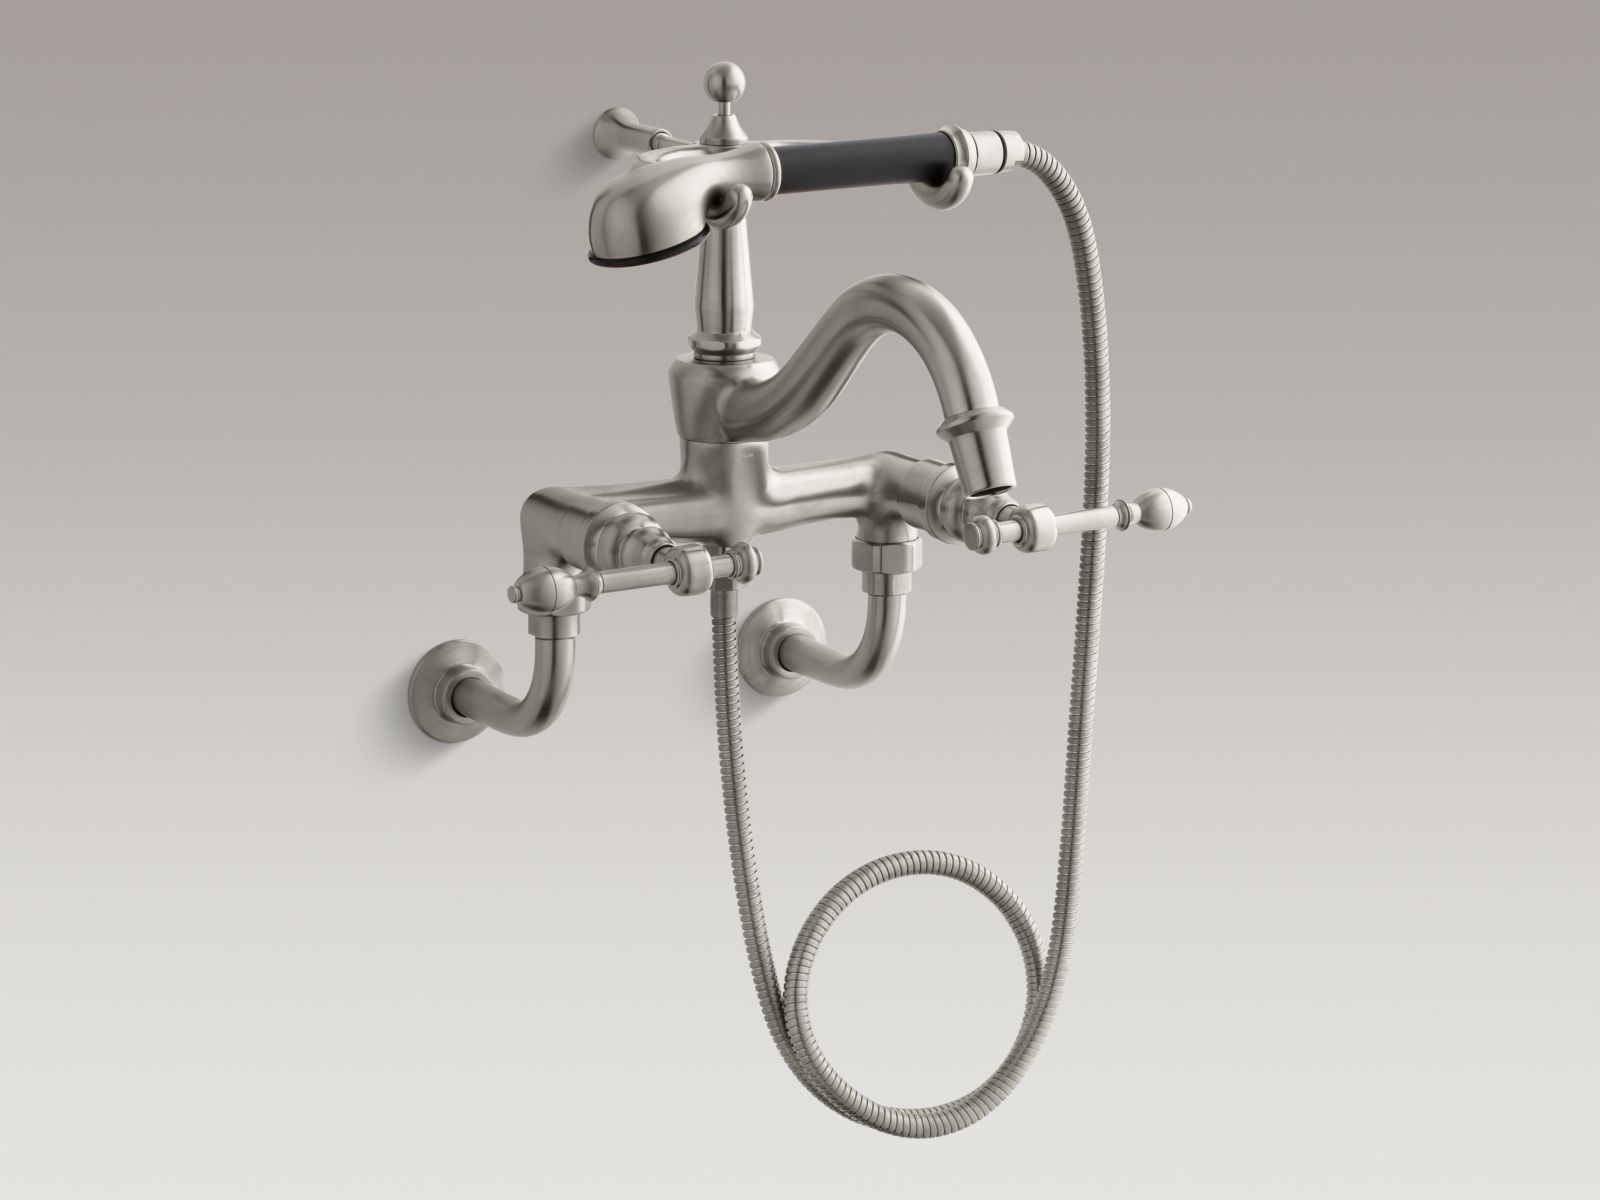 remarkable parts for or bathroom ideas sink kitchen of kohler brilliant collection tremendous solutions faucet faucets